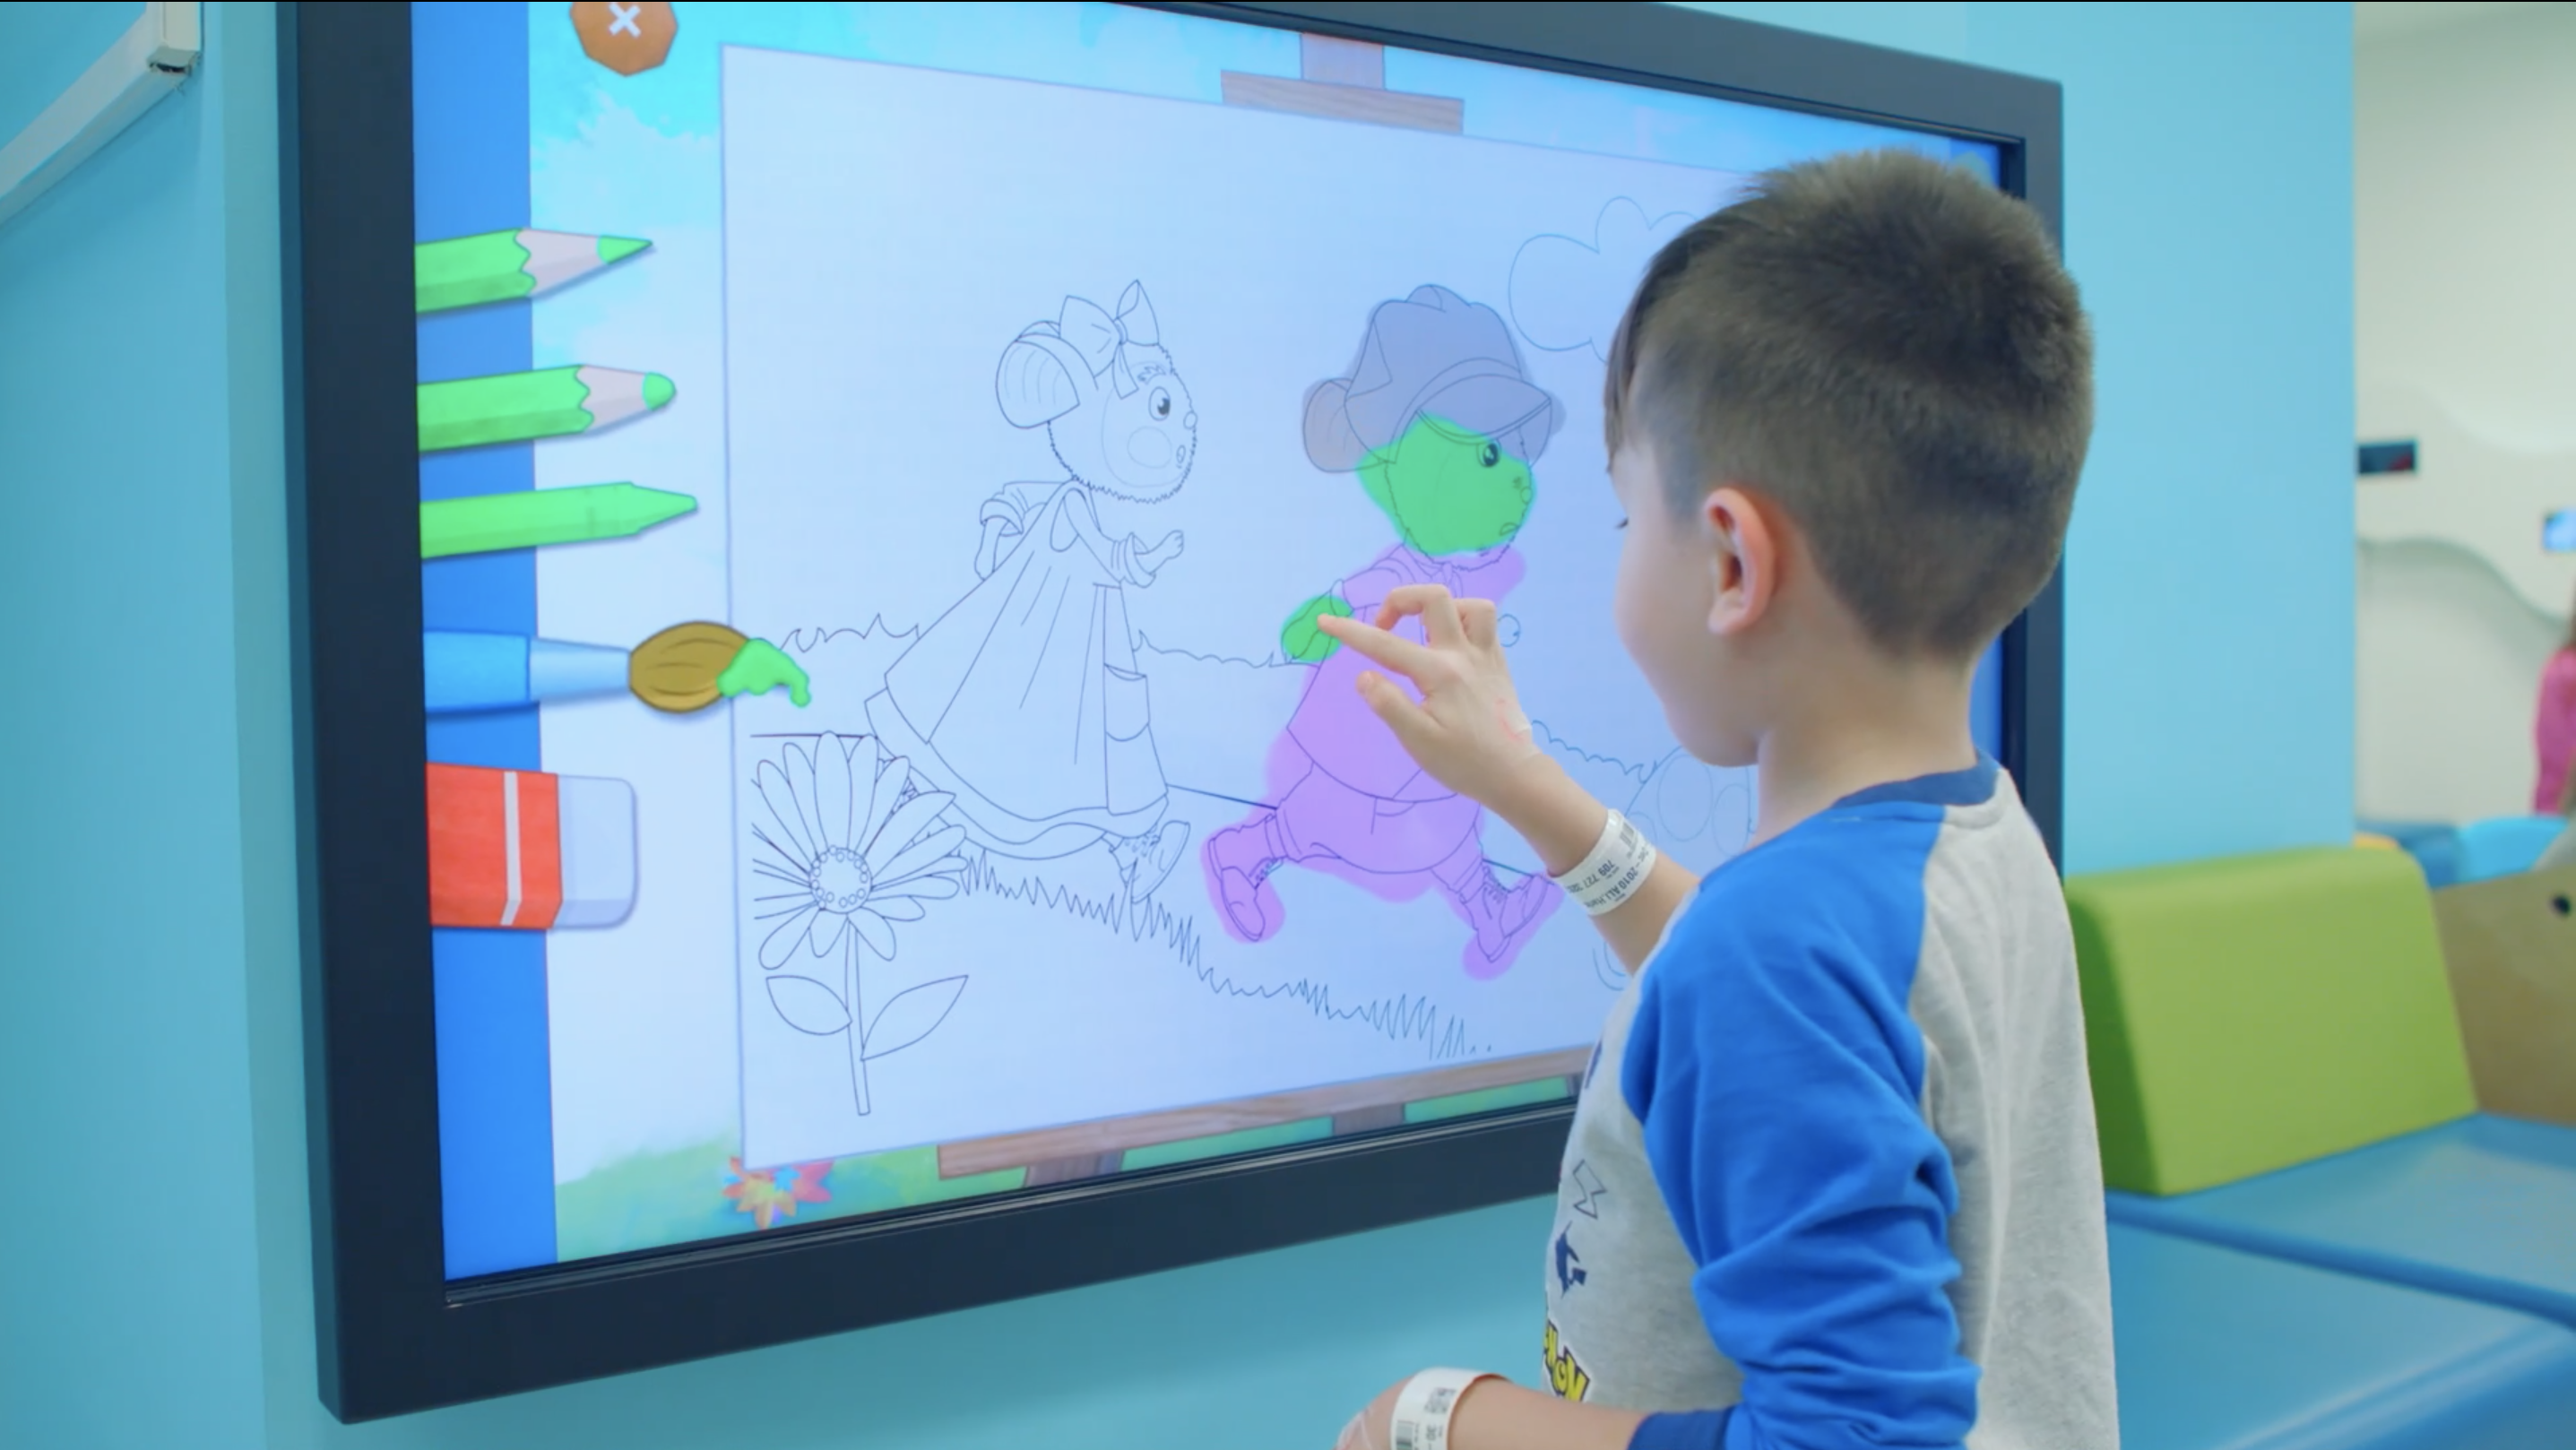 Little boy colouring on large interactive touch screen